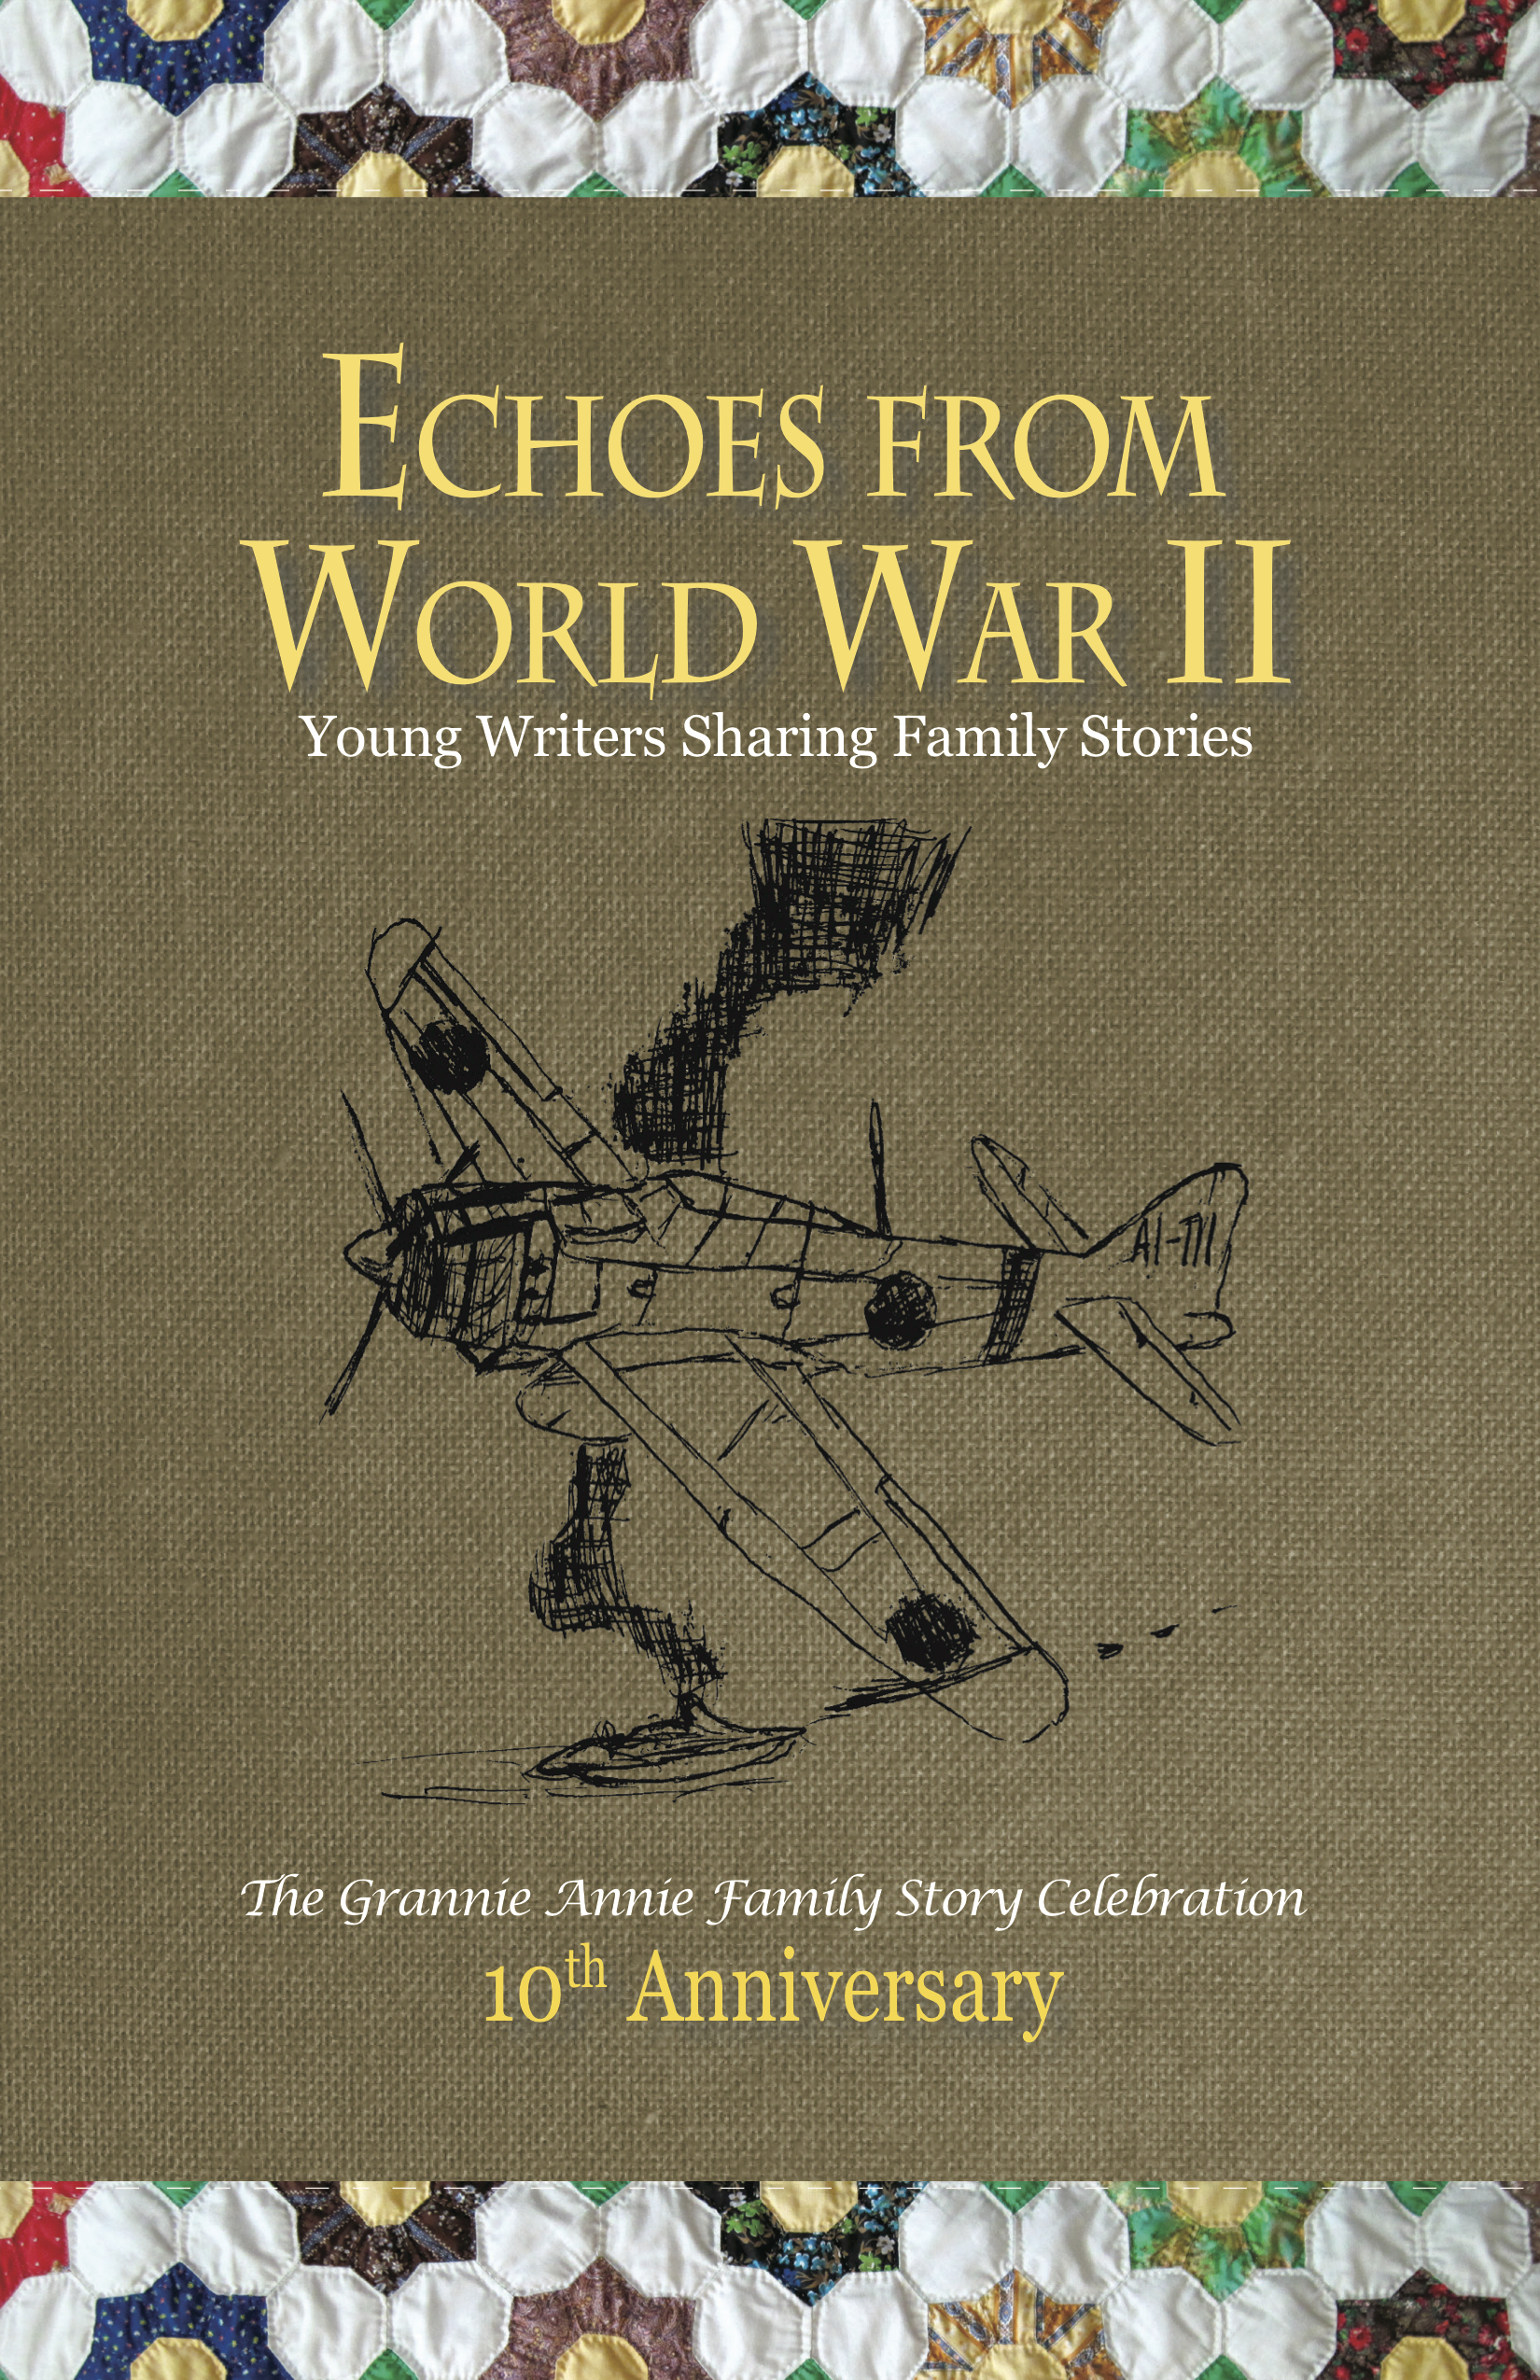 Echoes from World War II - Young Writers Sharing Family Stories